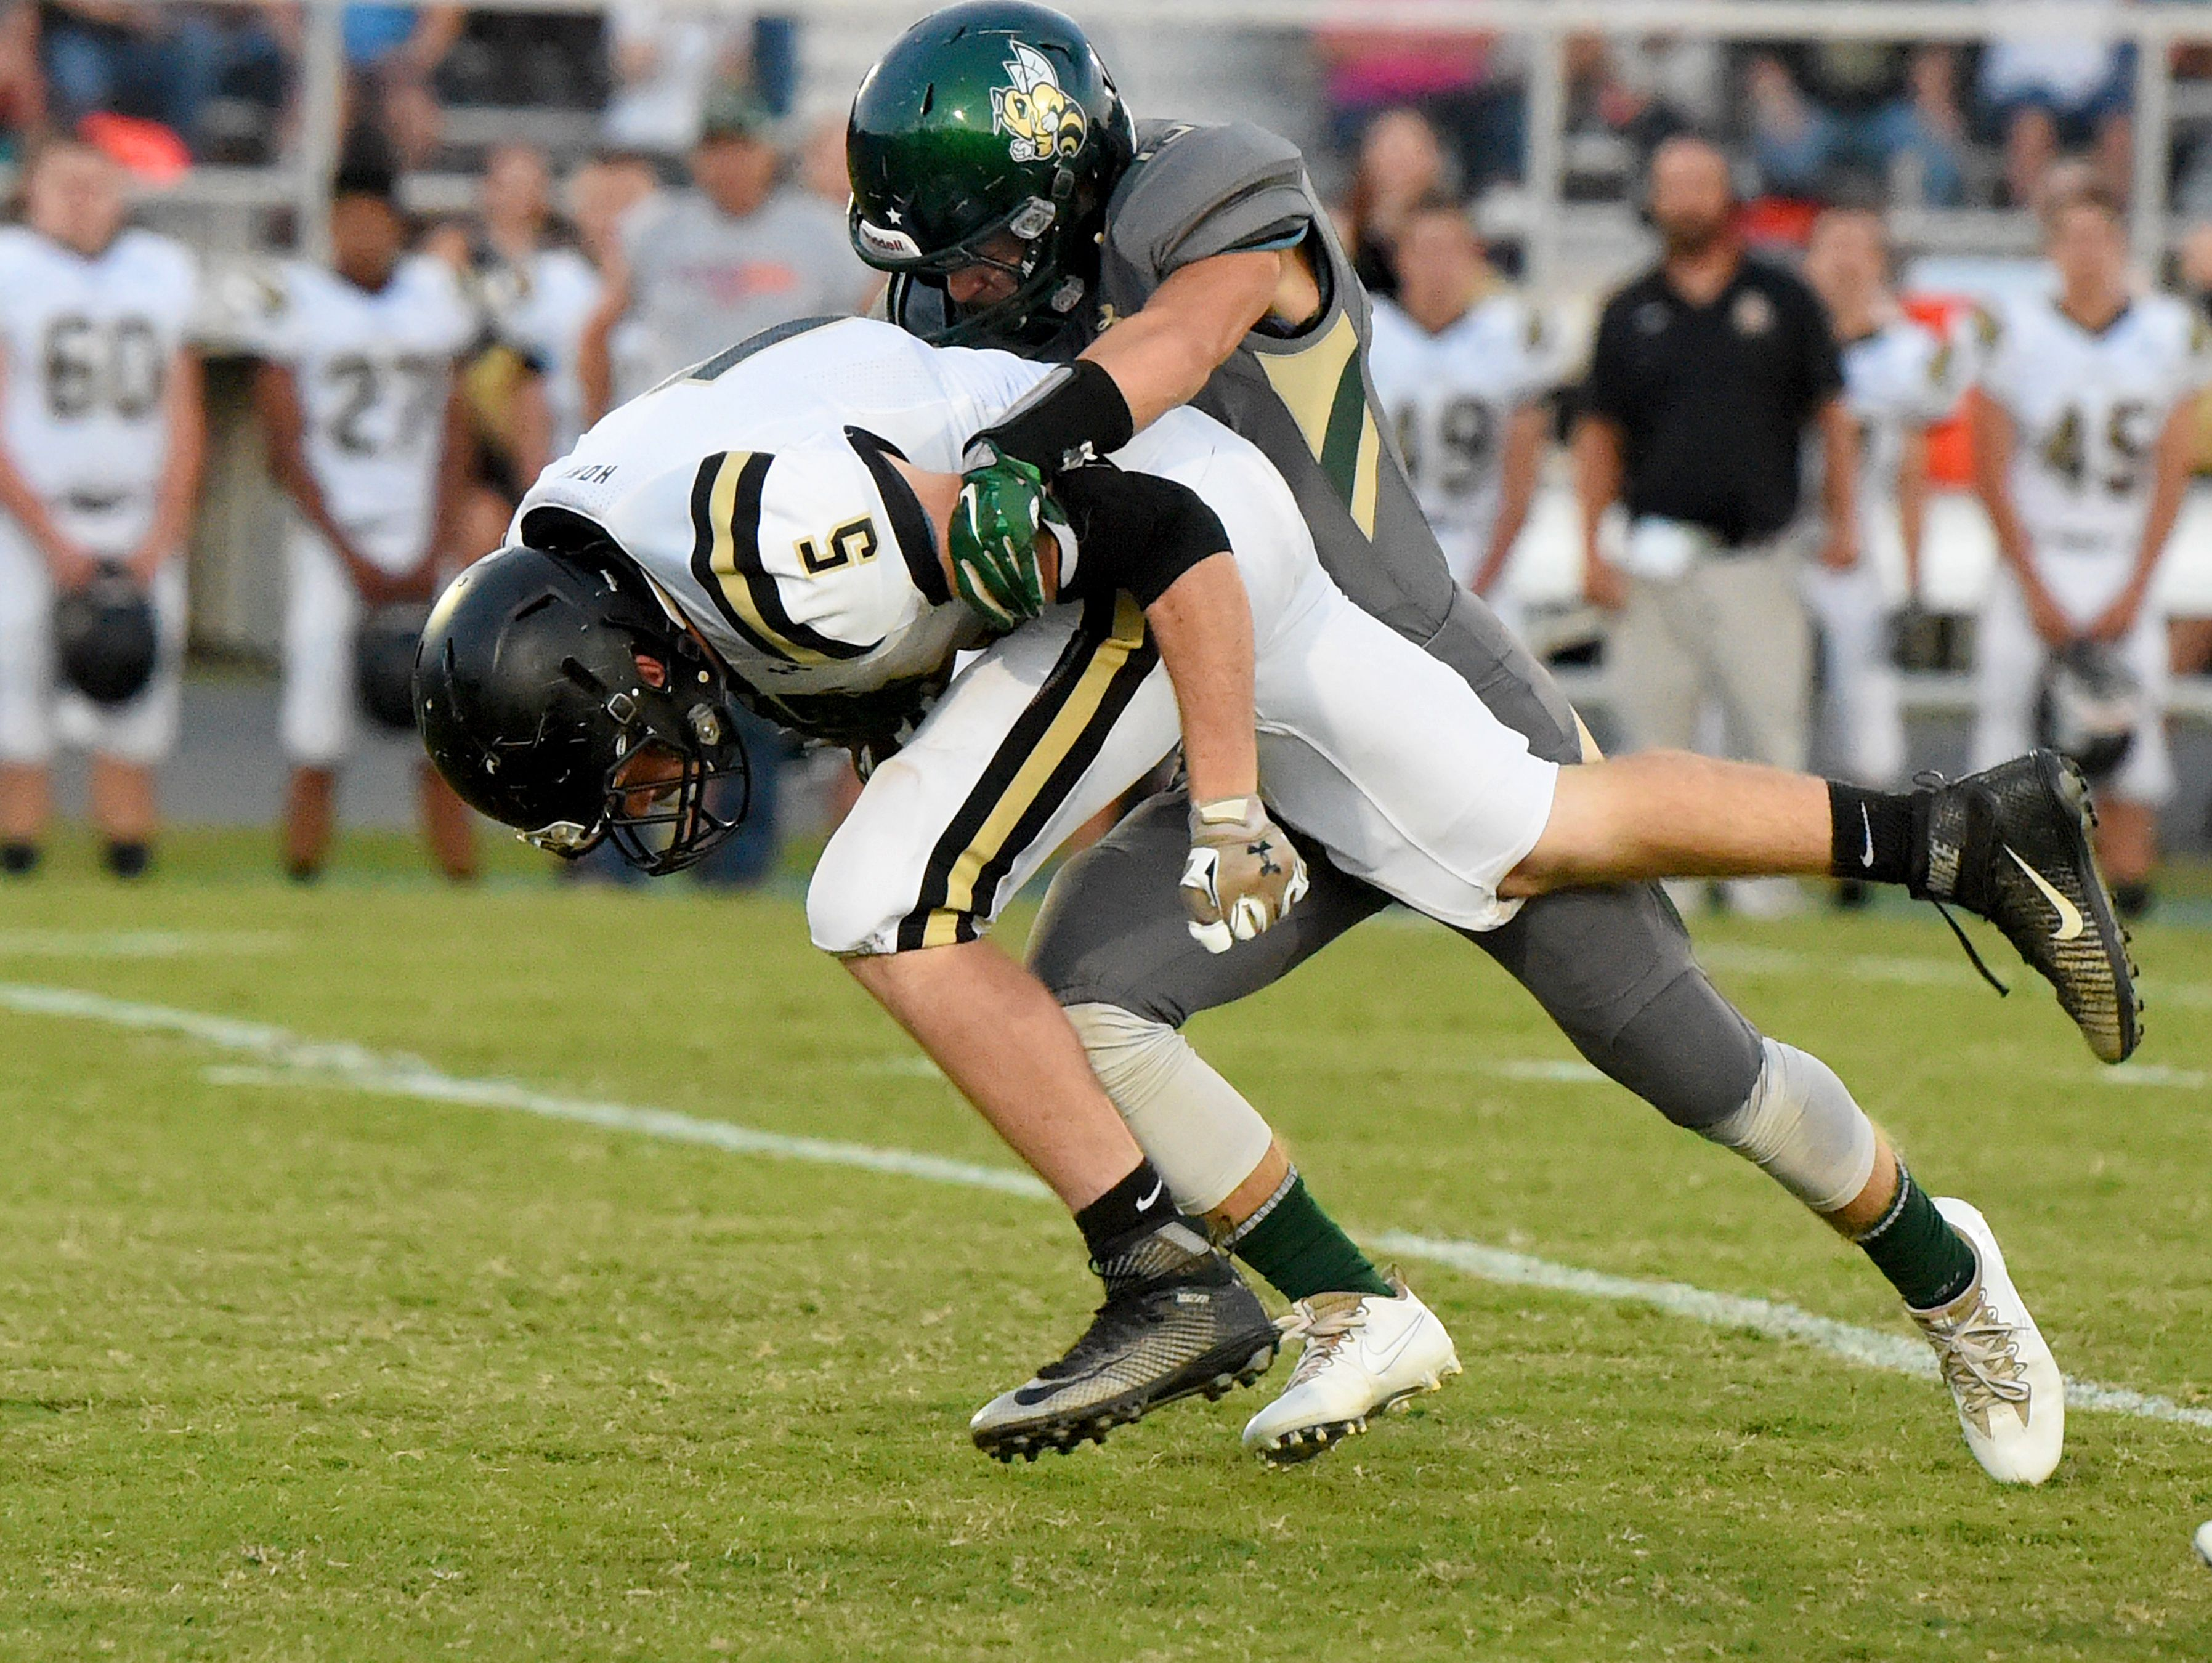 Buffalo Gap's Jacob Thompson is tackled by Wilson Memorial's Michael Via during a football game played in Fishersville on Friday, Sept. 23, 2016.